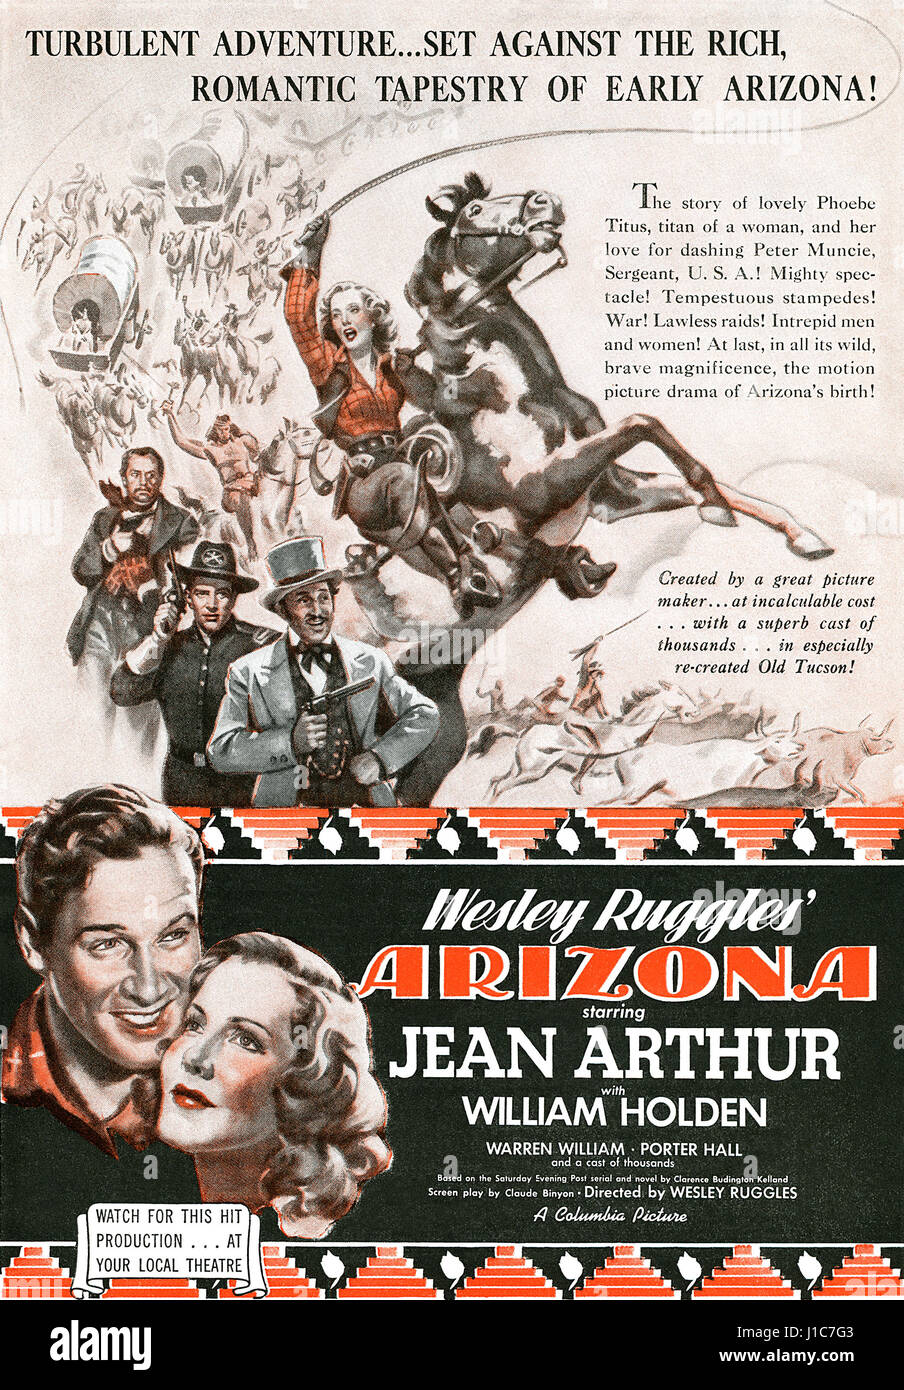 1940 U.S. advertisement for the film Arizona starring Jean Arthur and William Holden. - Stock Image